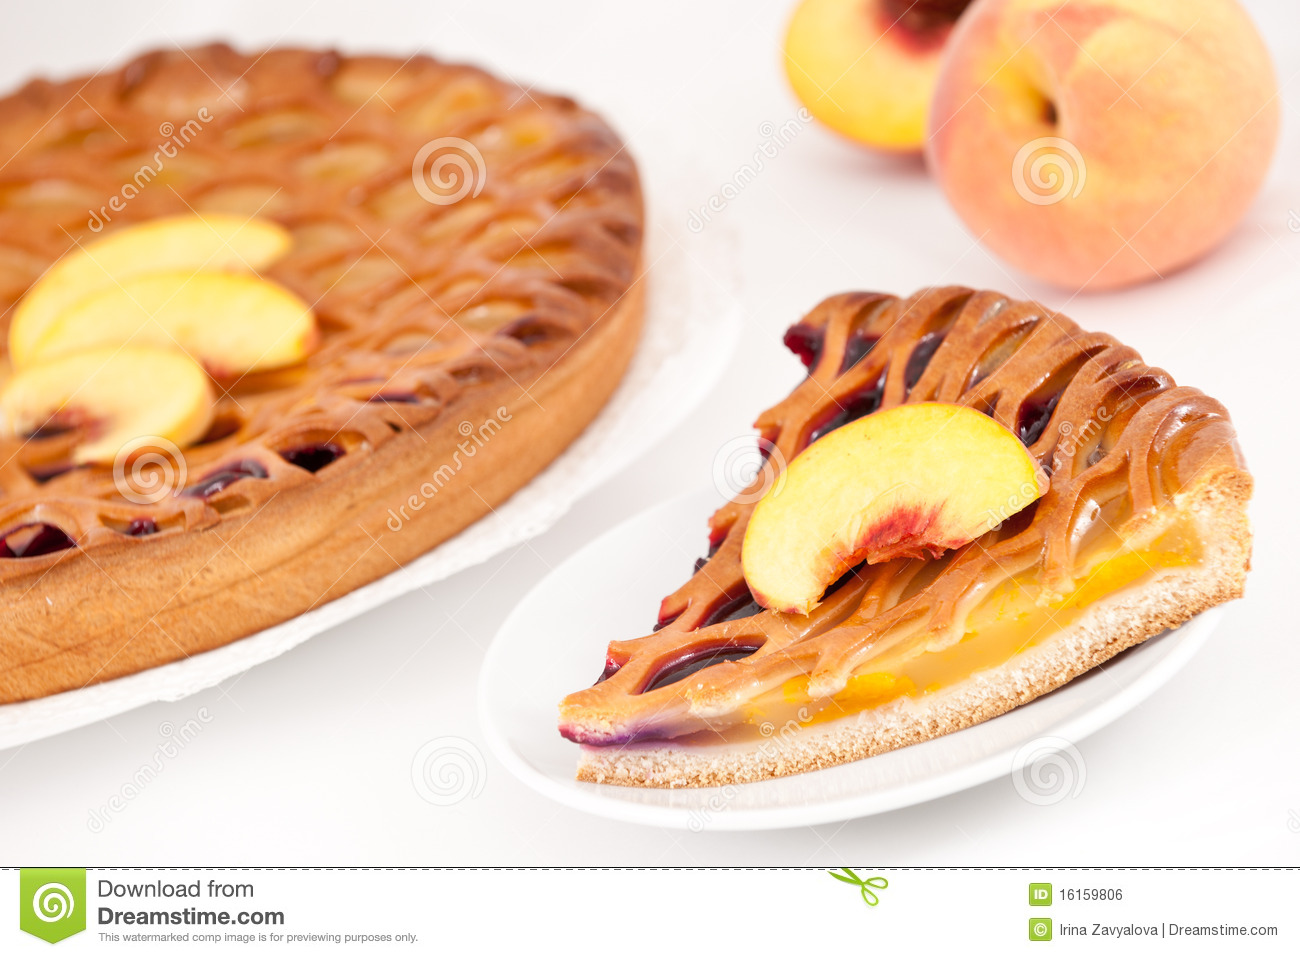 Peach Cherry Pie Royalty Free Stock Image   Image  16159806